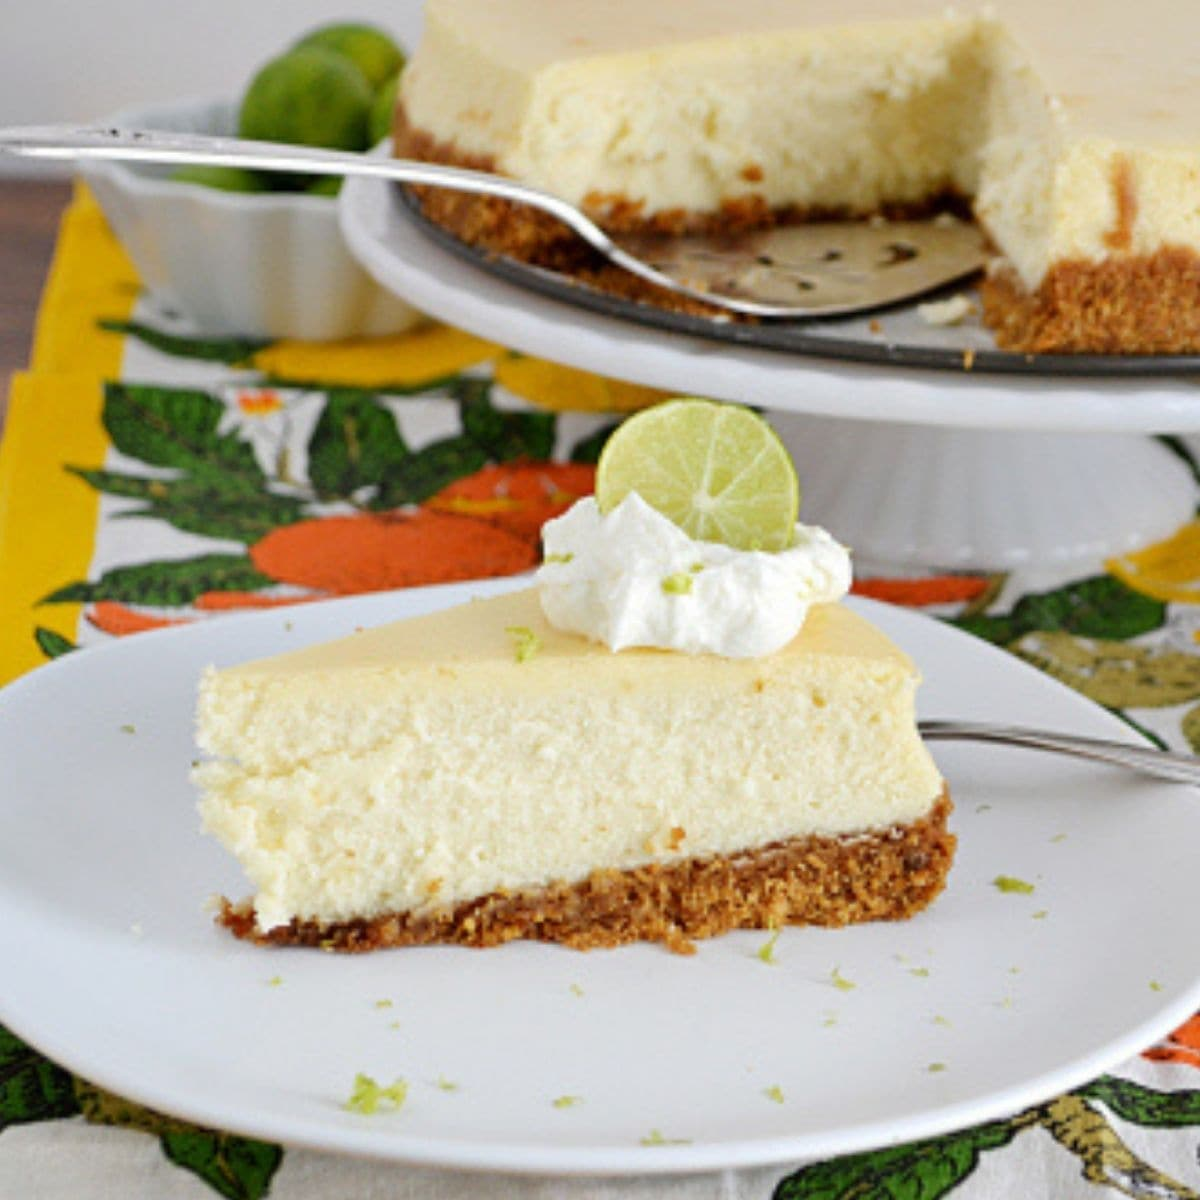 Slice of Key Lime Cheesecake garnished with whipped cream and lime wedge.